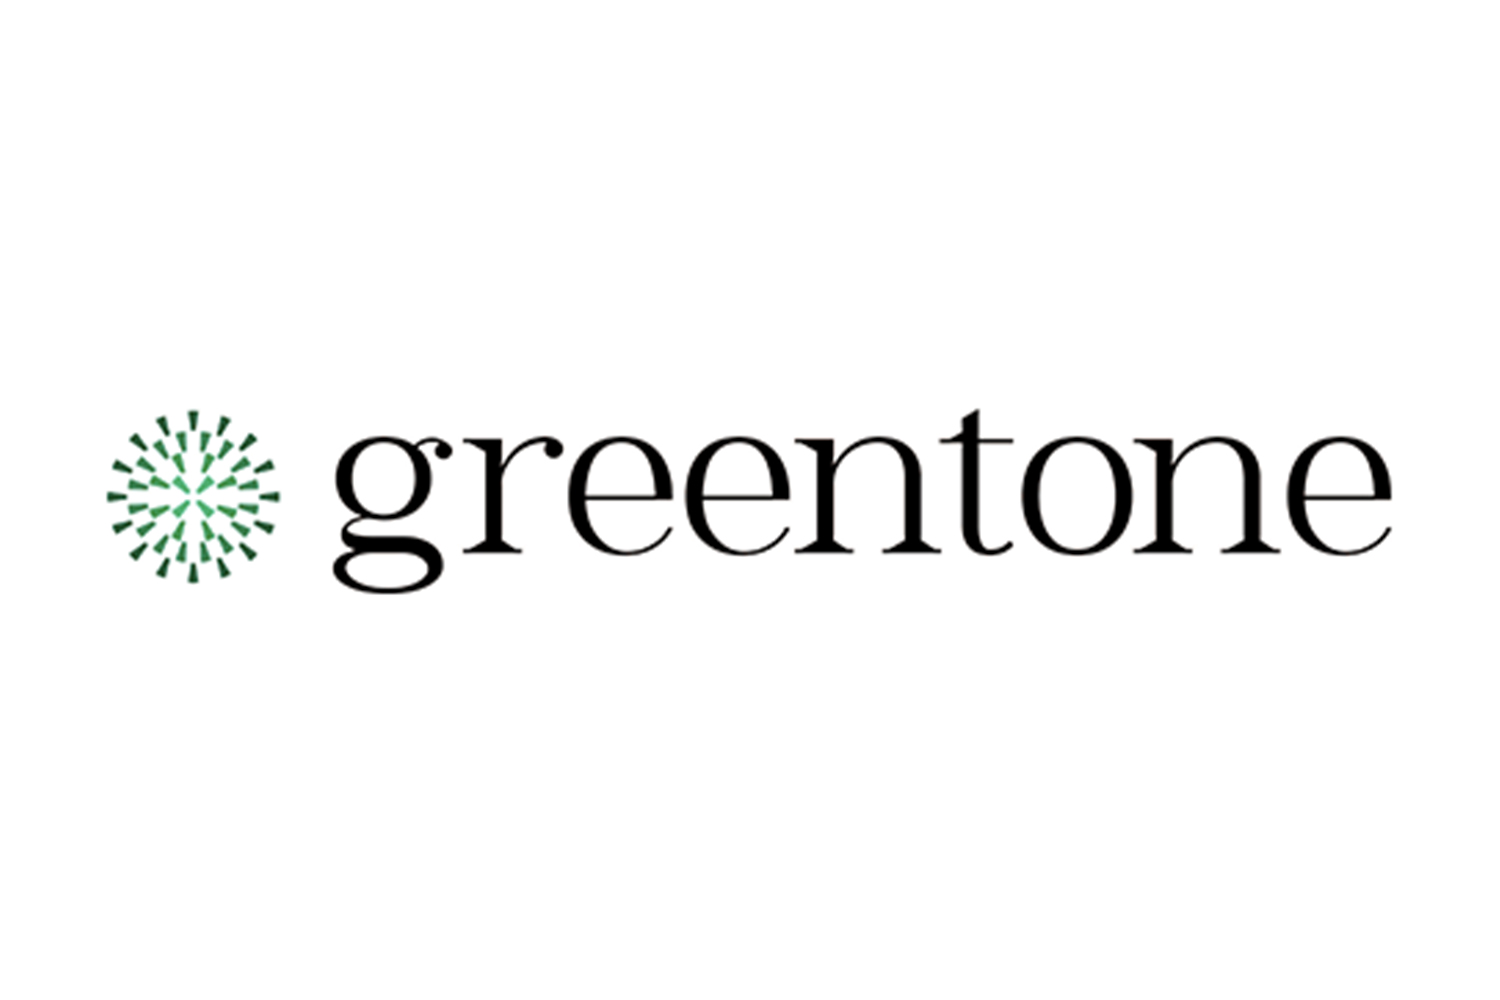 the green organic greentone